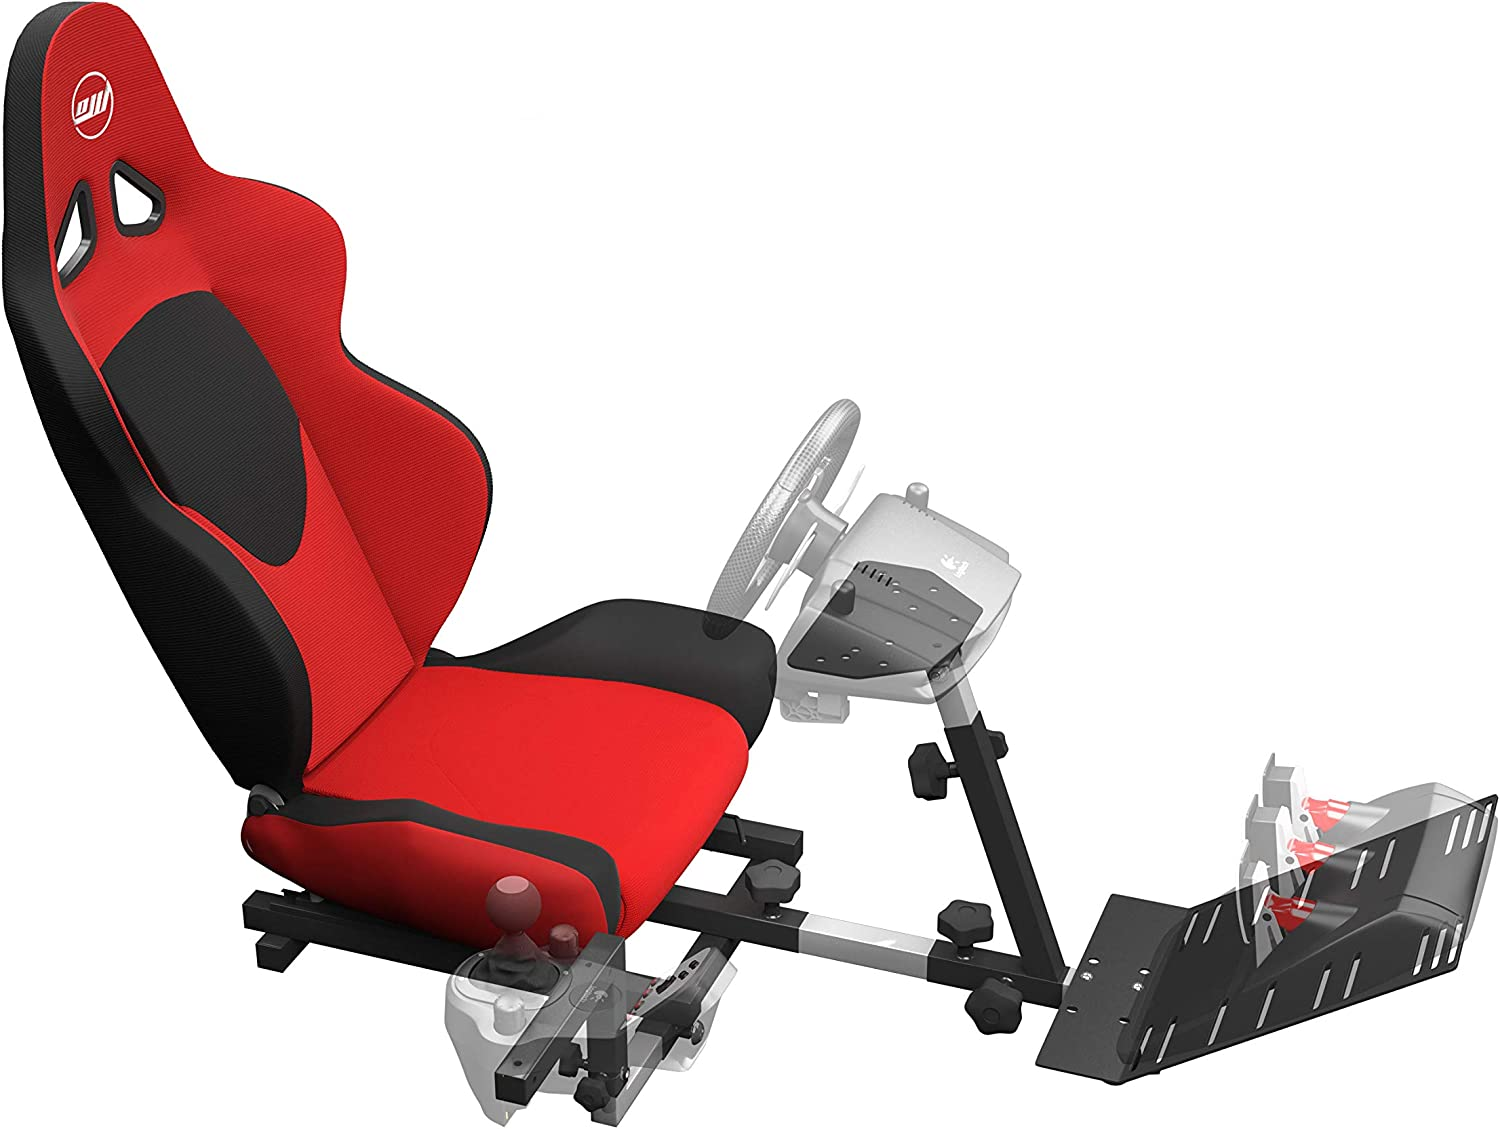 OpenWheeler Racing Wheel Stand Cockpit Red on Black | for Logitech G29 | G920 and Logitech G27 | G25 | Thrustmaster | Fanatec Wheels | Racing Wheel & Controllers NOT Included OW-GV1FR